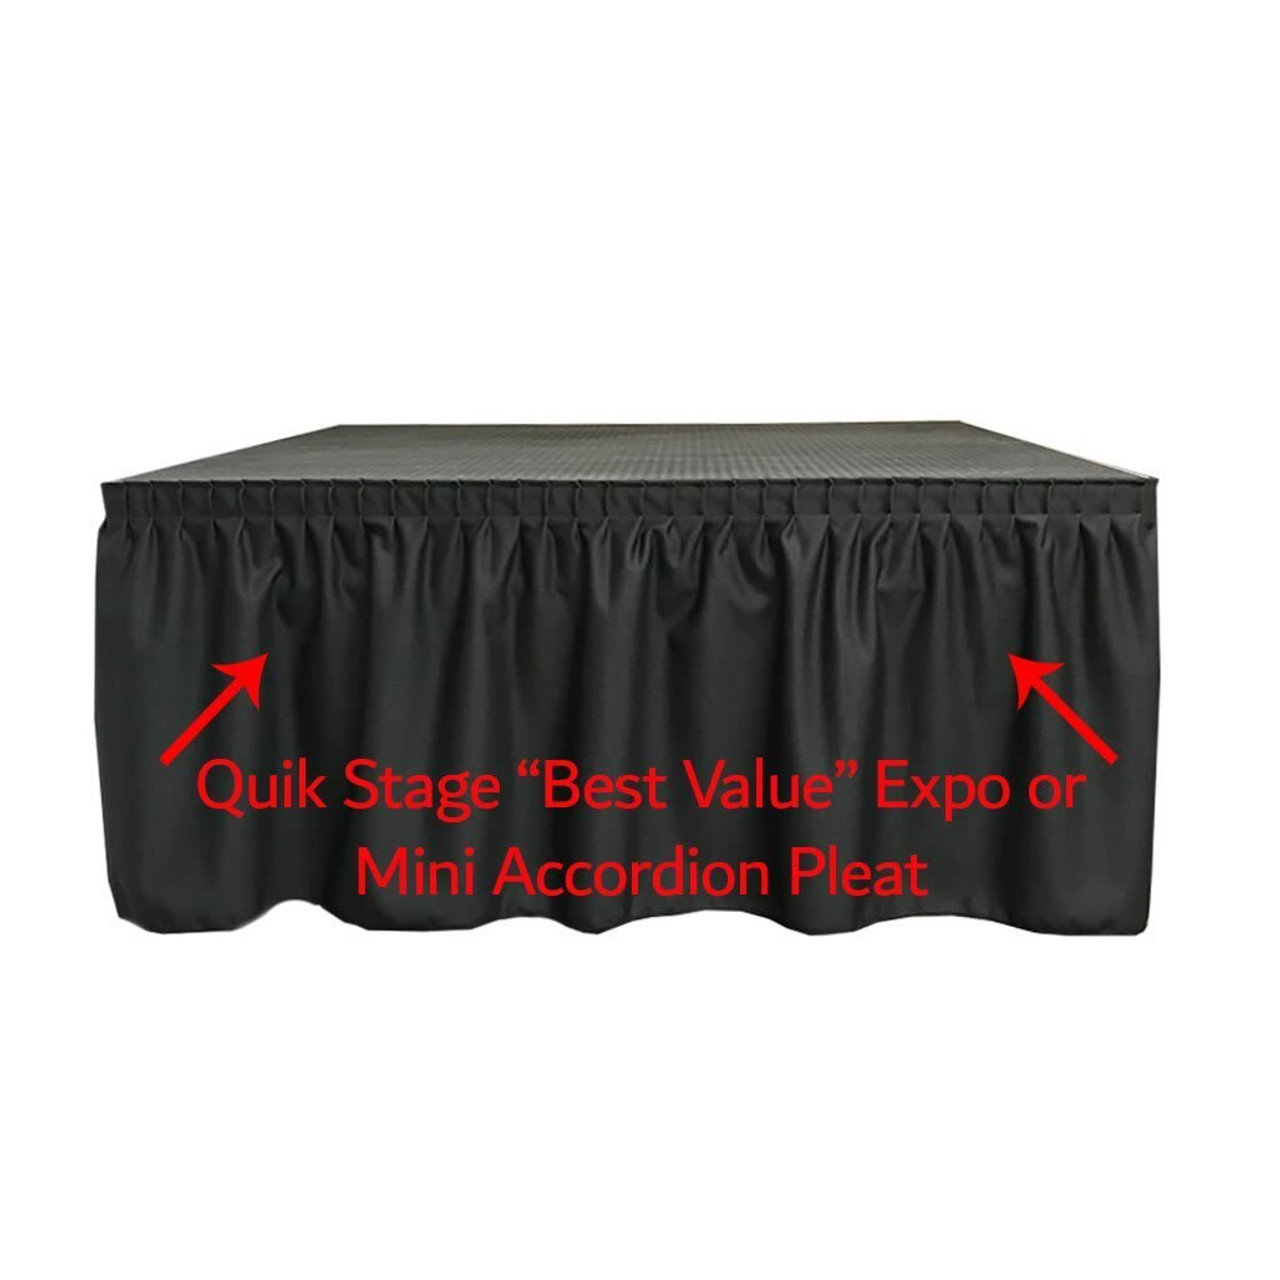 High Quality Quik Stage 4' x 4' High Portable Stage Package with Black Polyvinyl Non-Skid Surface. Additional Heights and Surfaces Available - Best Value Expo Pleat Stage Skirting